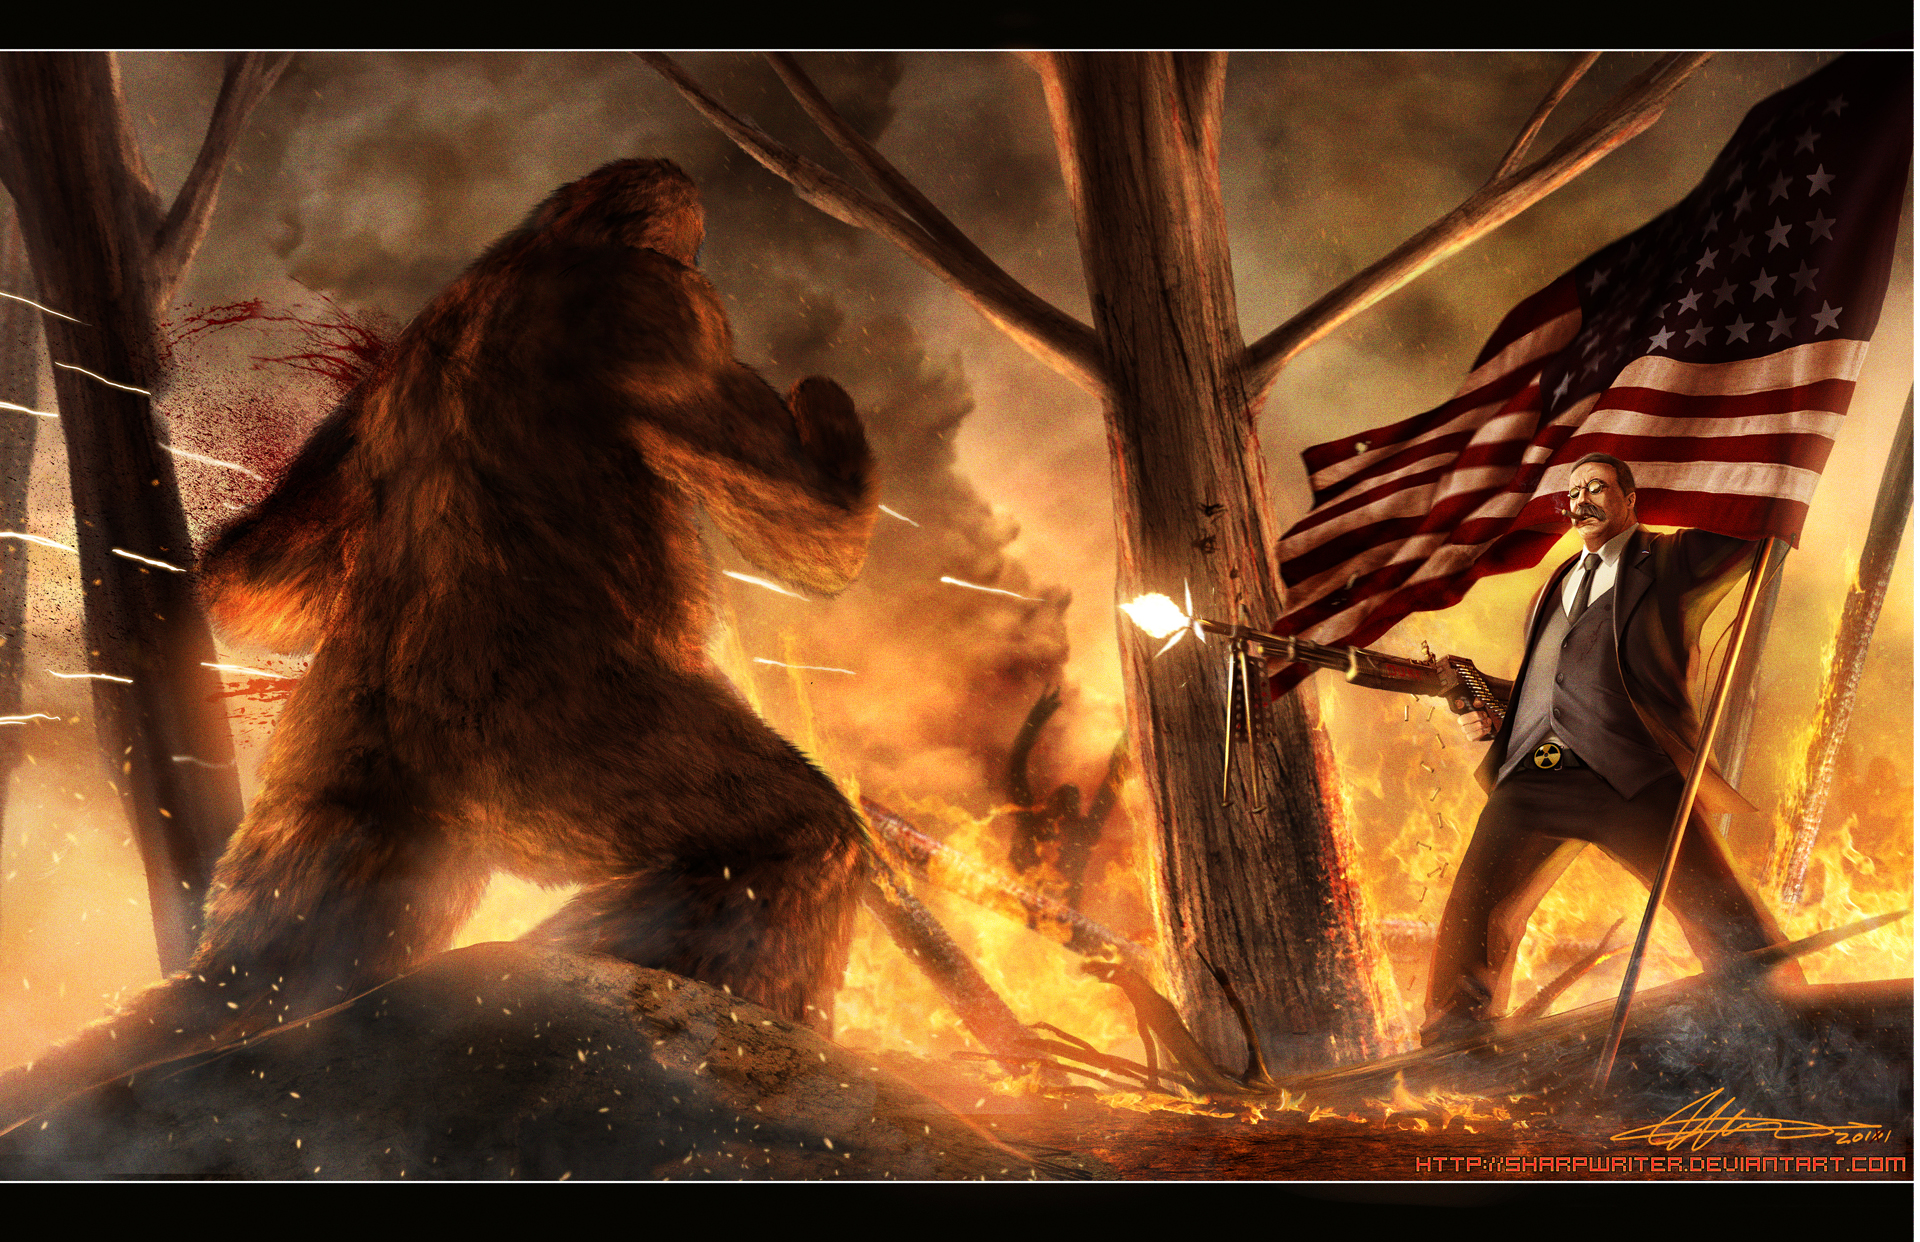 teddy roosevelt vs  bigfoot by sharpwriter d3a72w41 Creative Political Illustrations by Jason Heuser